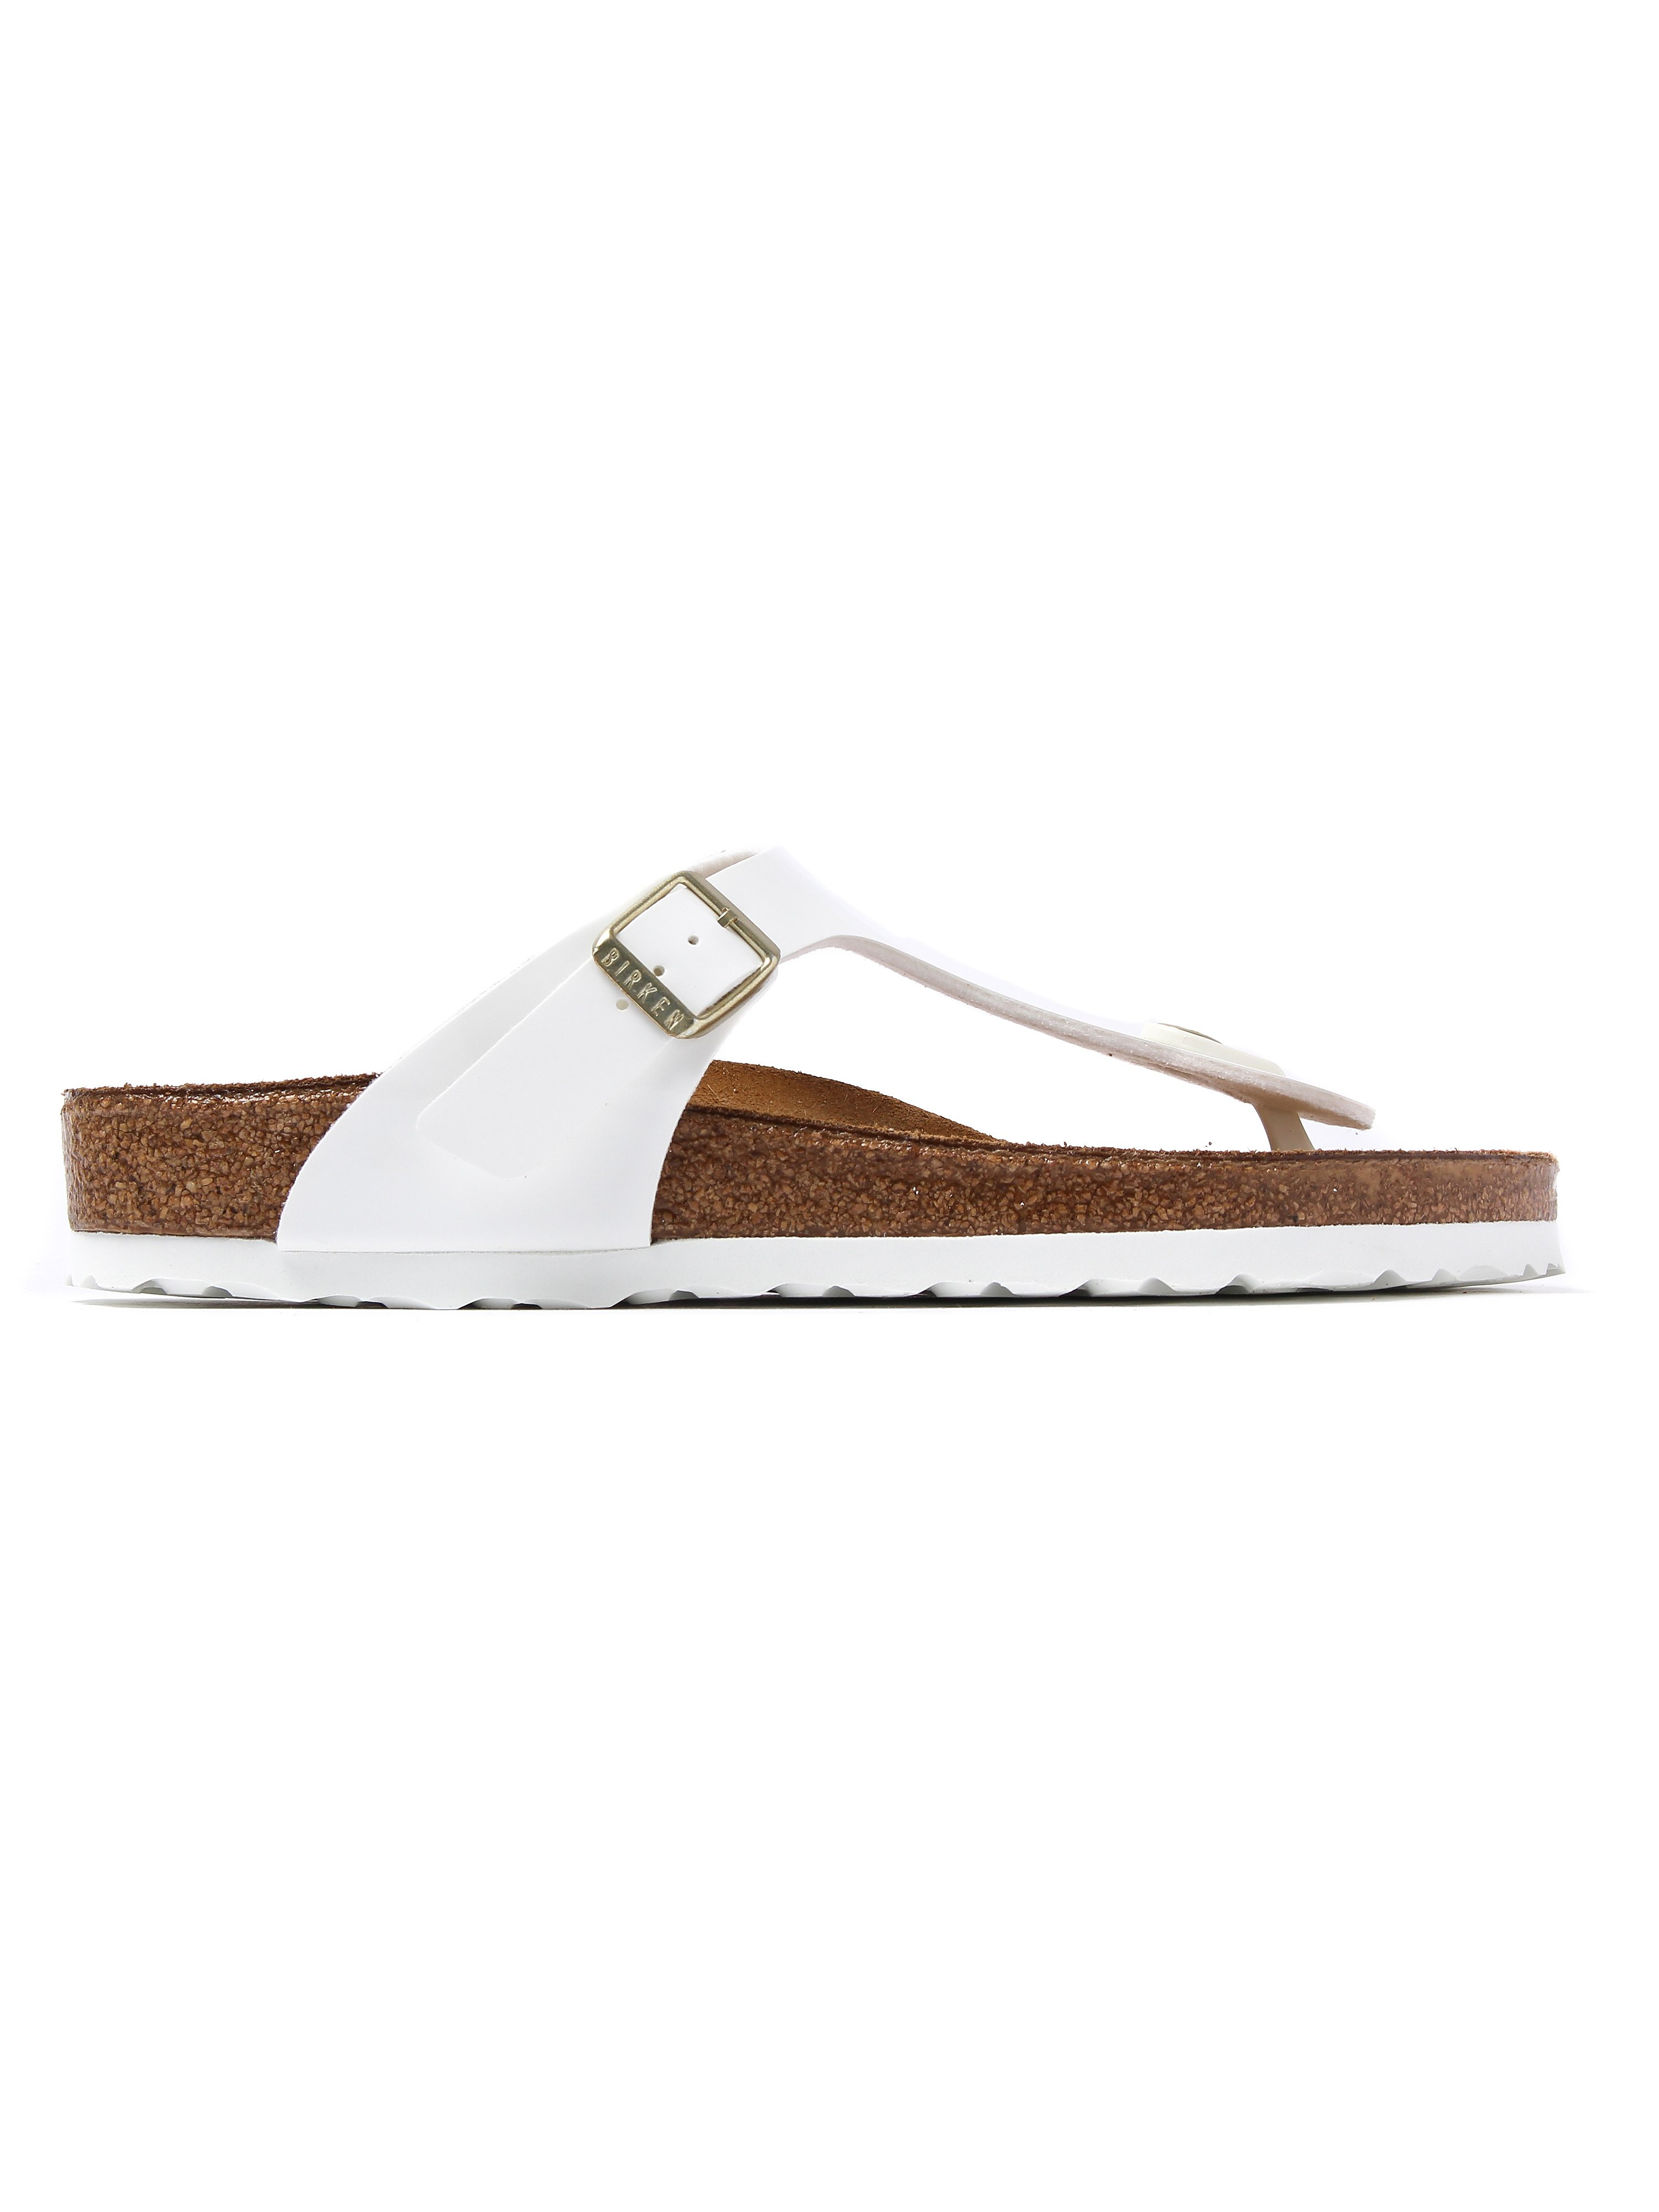 Birkenstock Women's Gizeh Regular Fit Sandals - White Patent